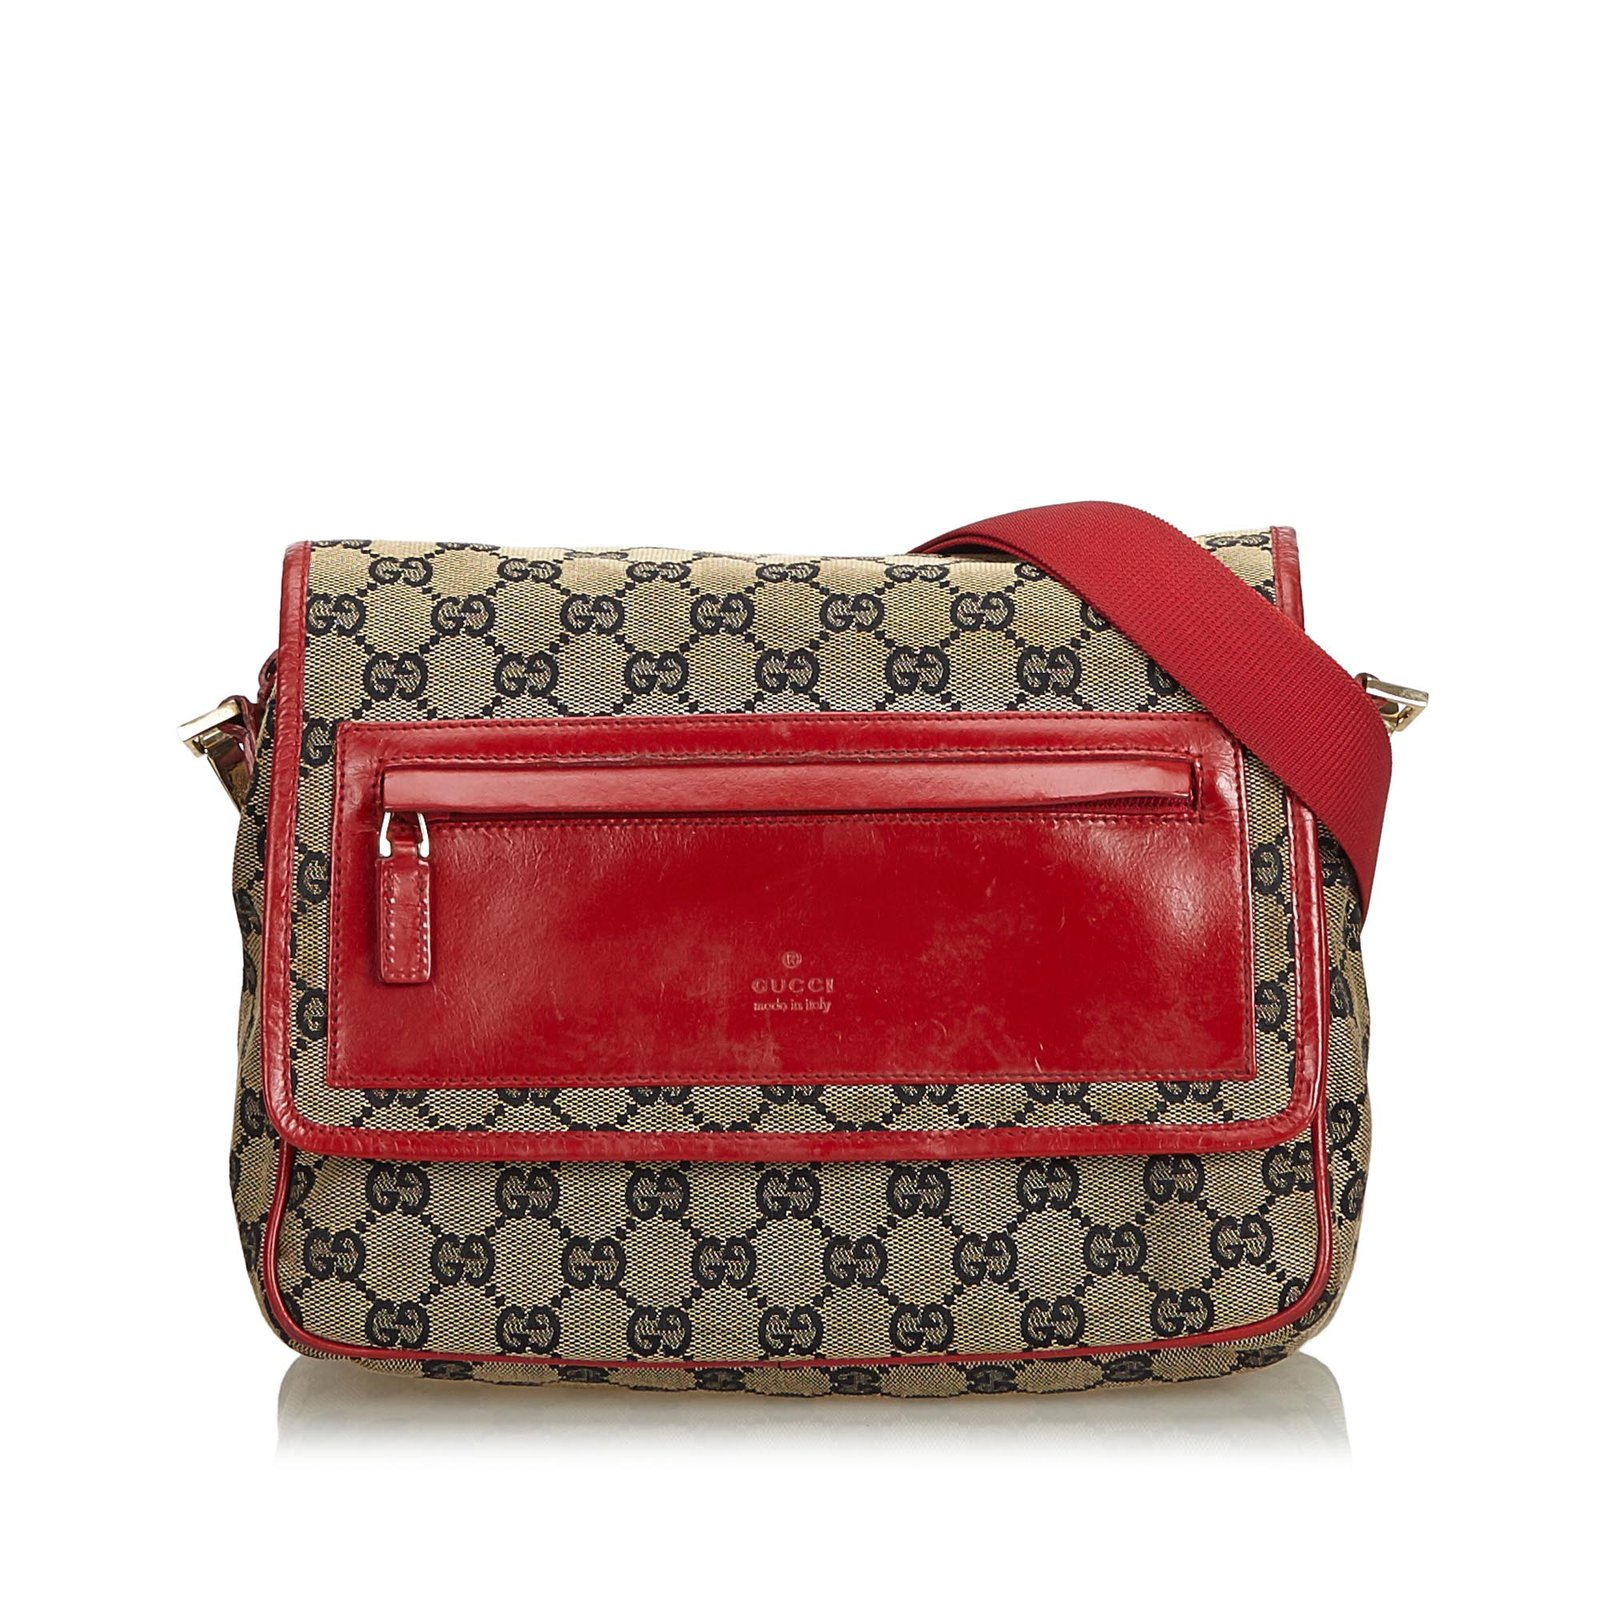 f913766e4 Gucci GG Canvas Crossbody Bag Handbags Leather,Other,Cloth,Cloth Brown,Red